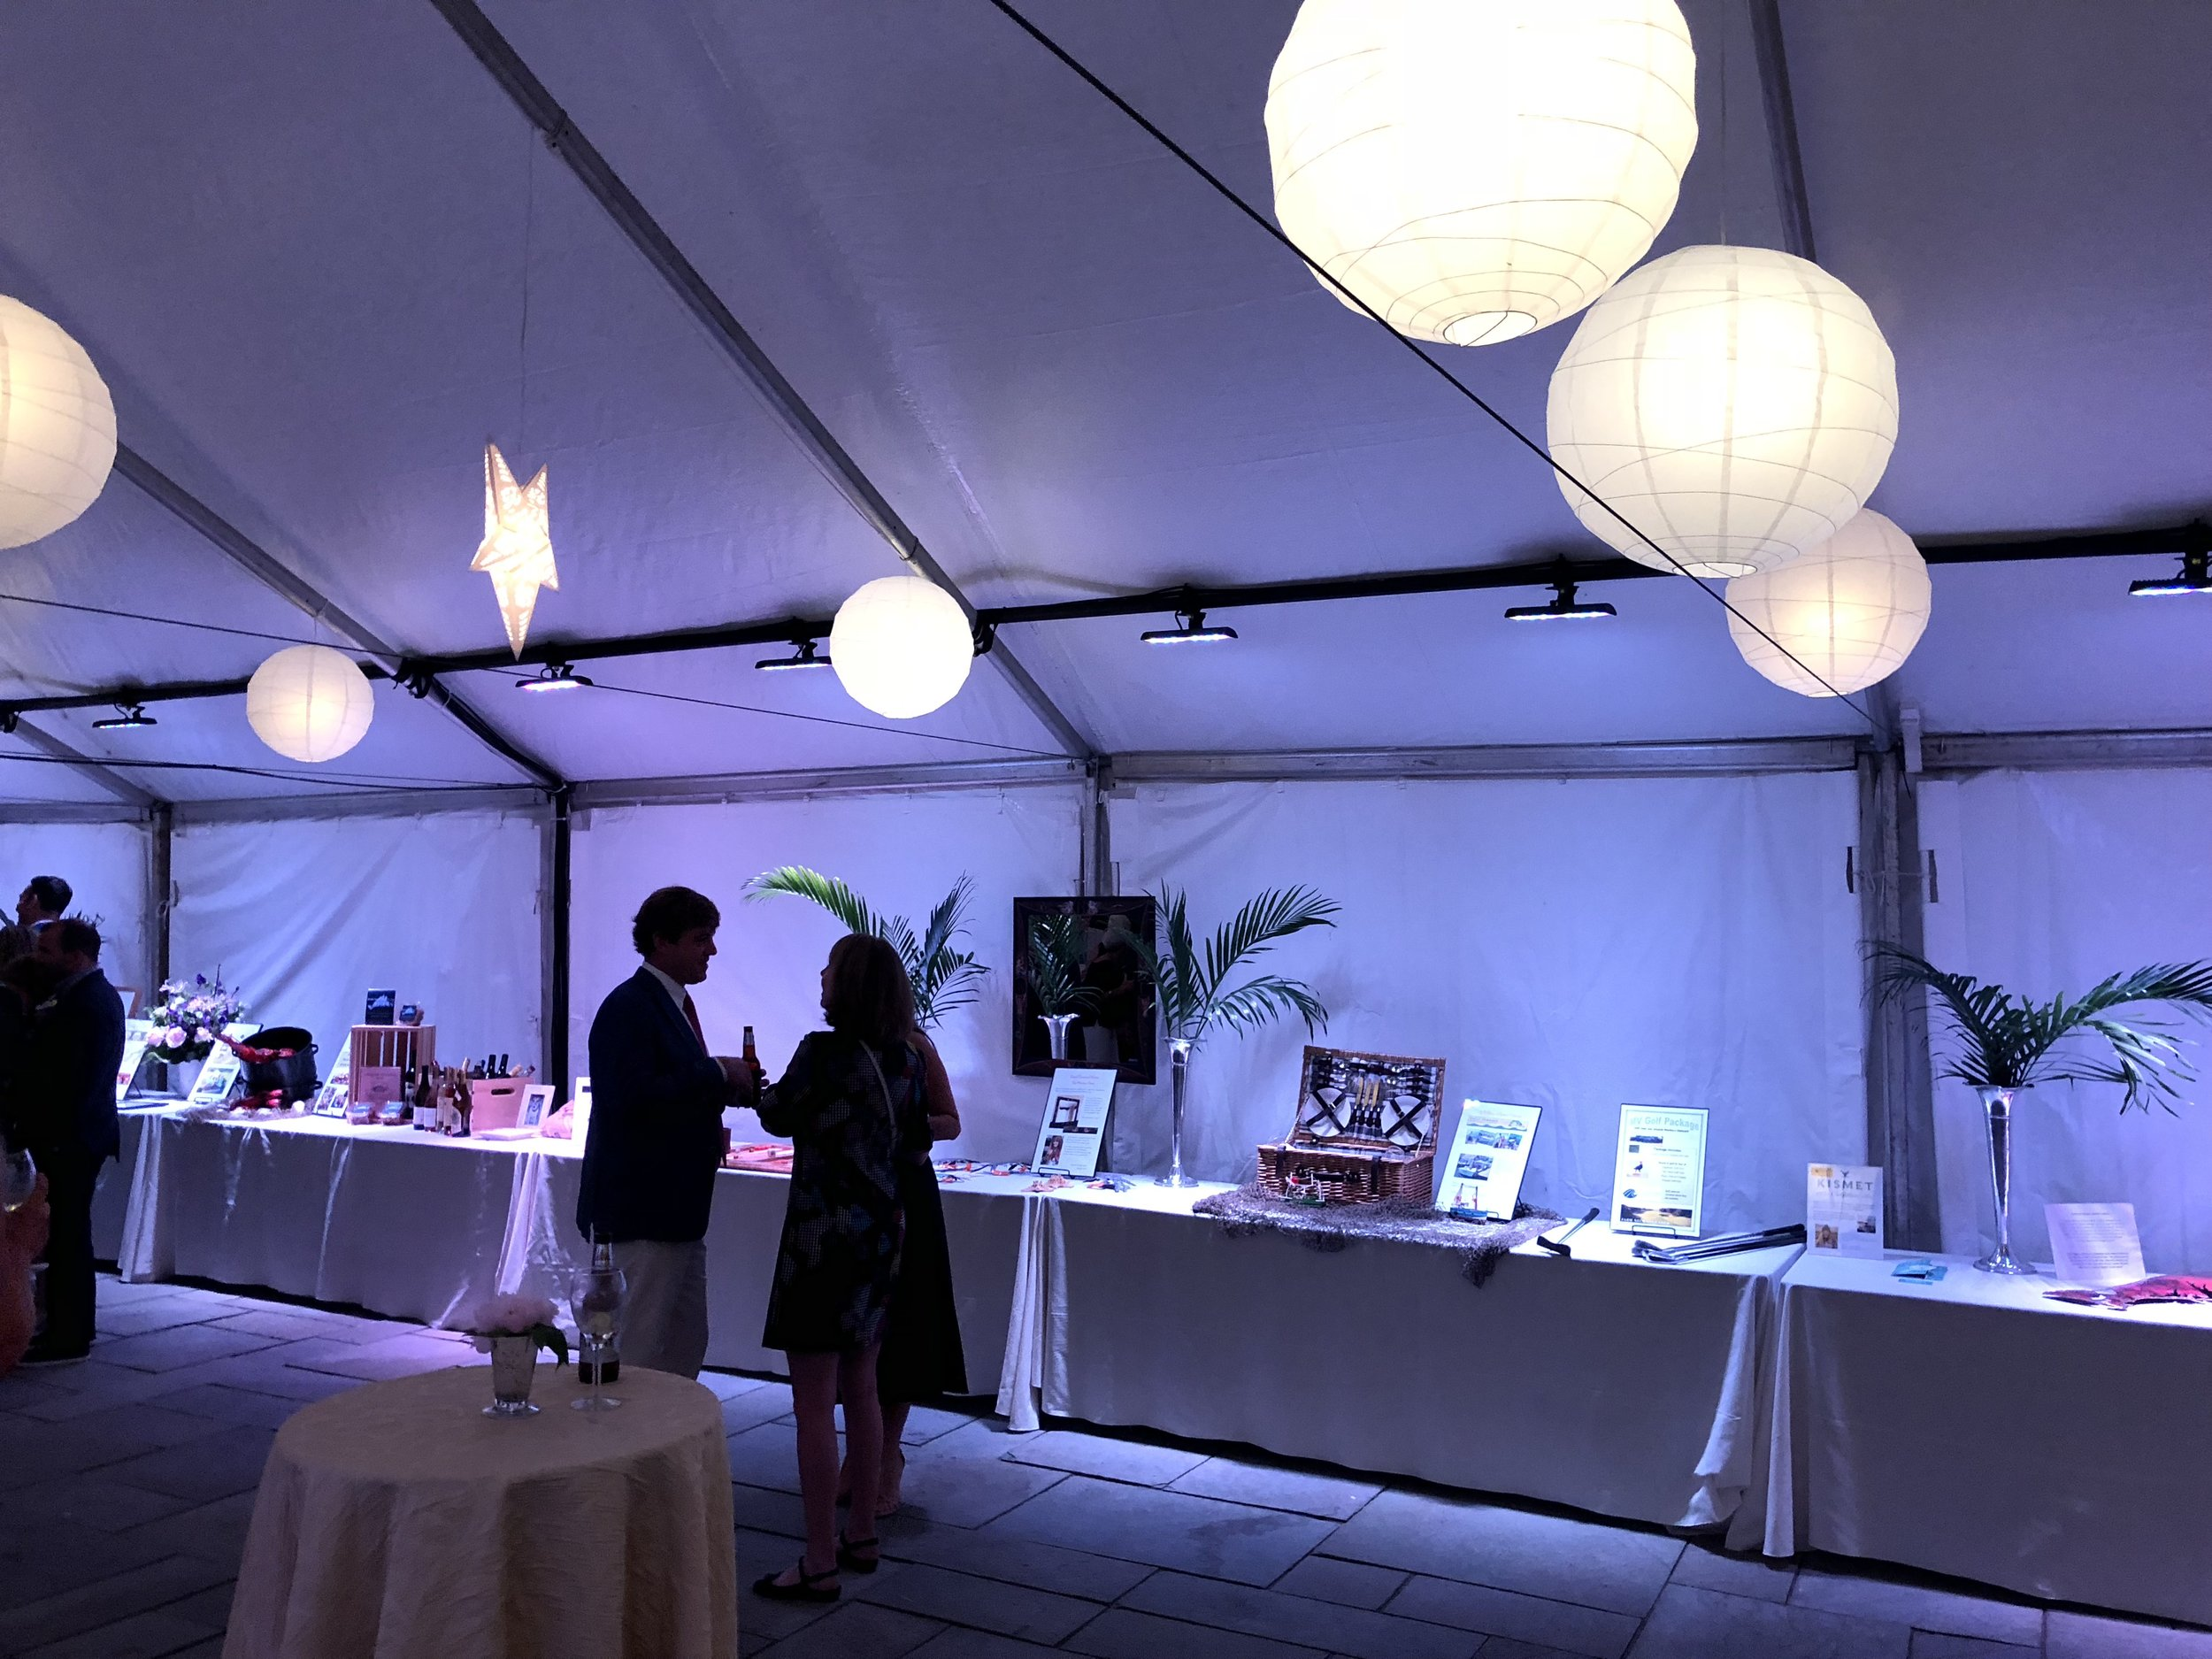 LED lighting for auction items